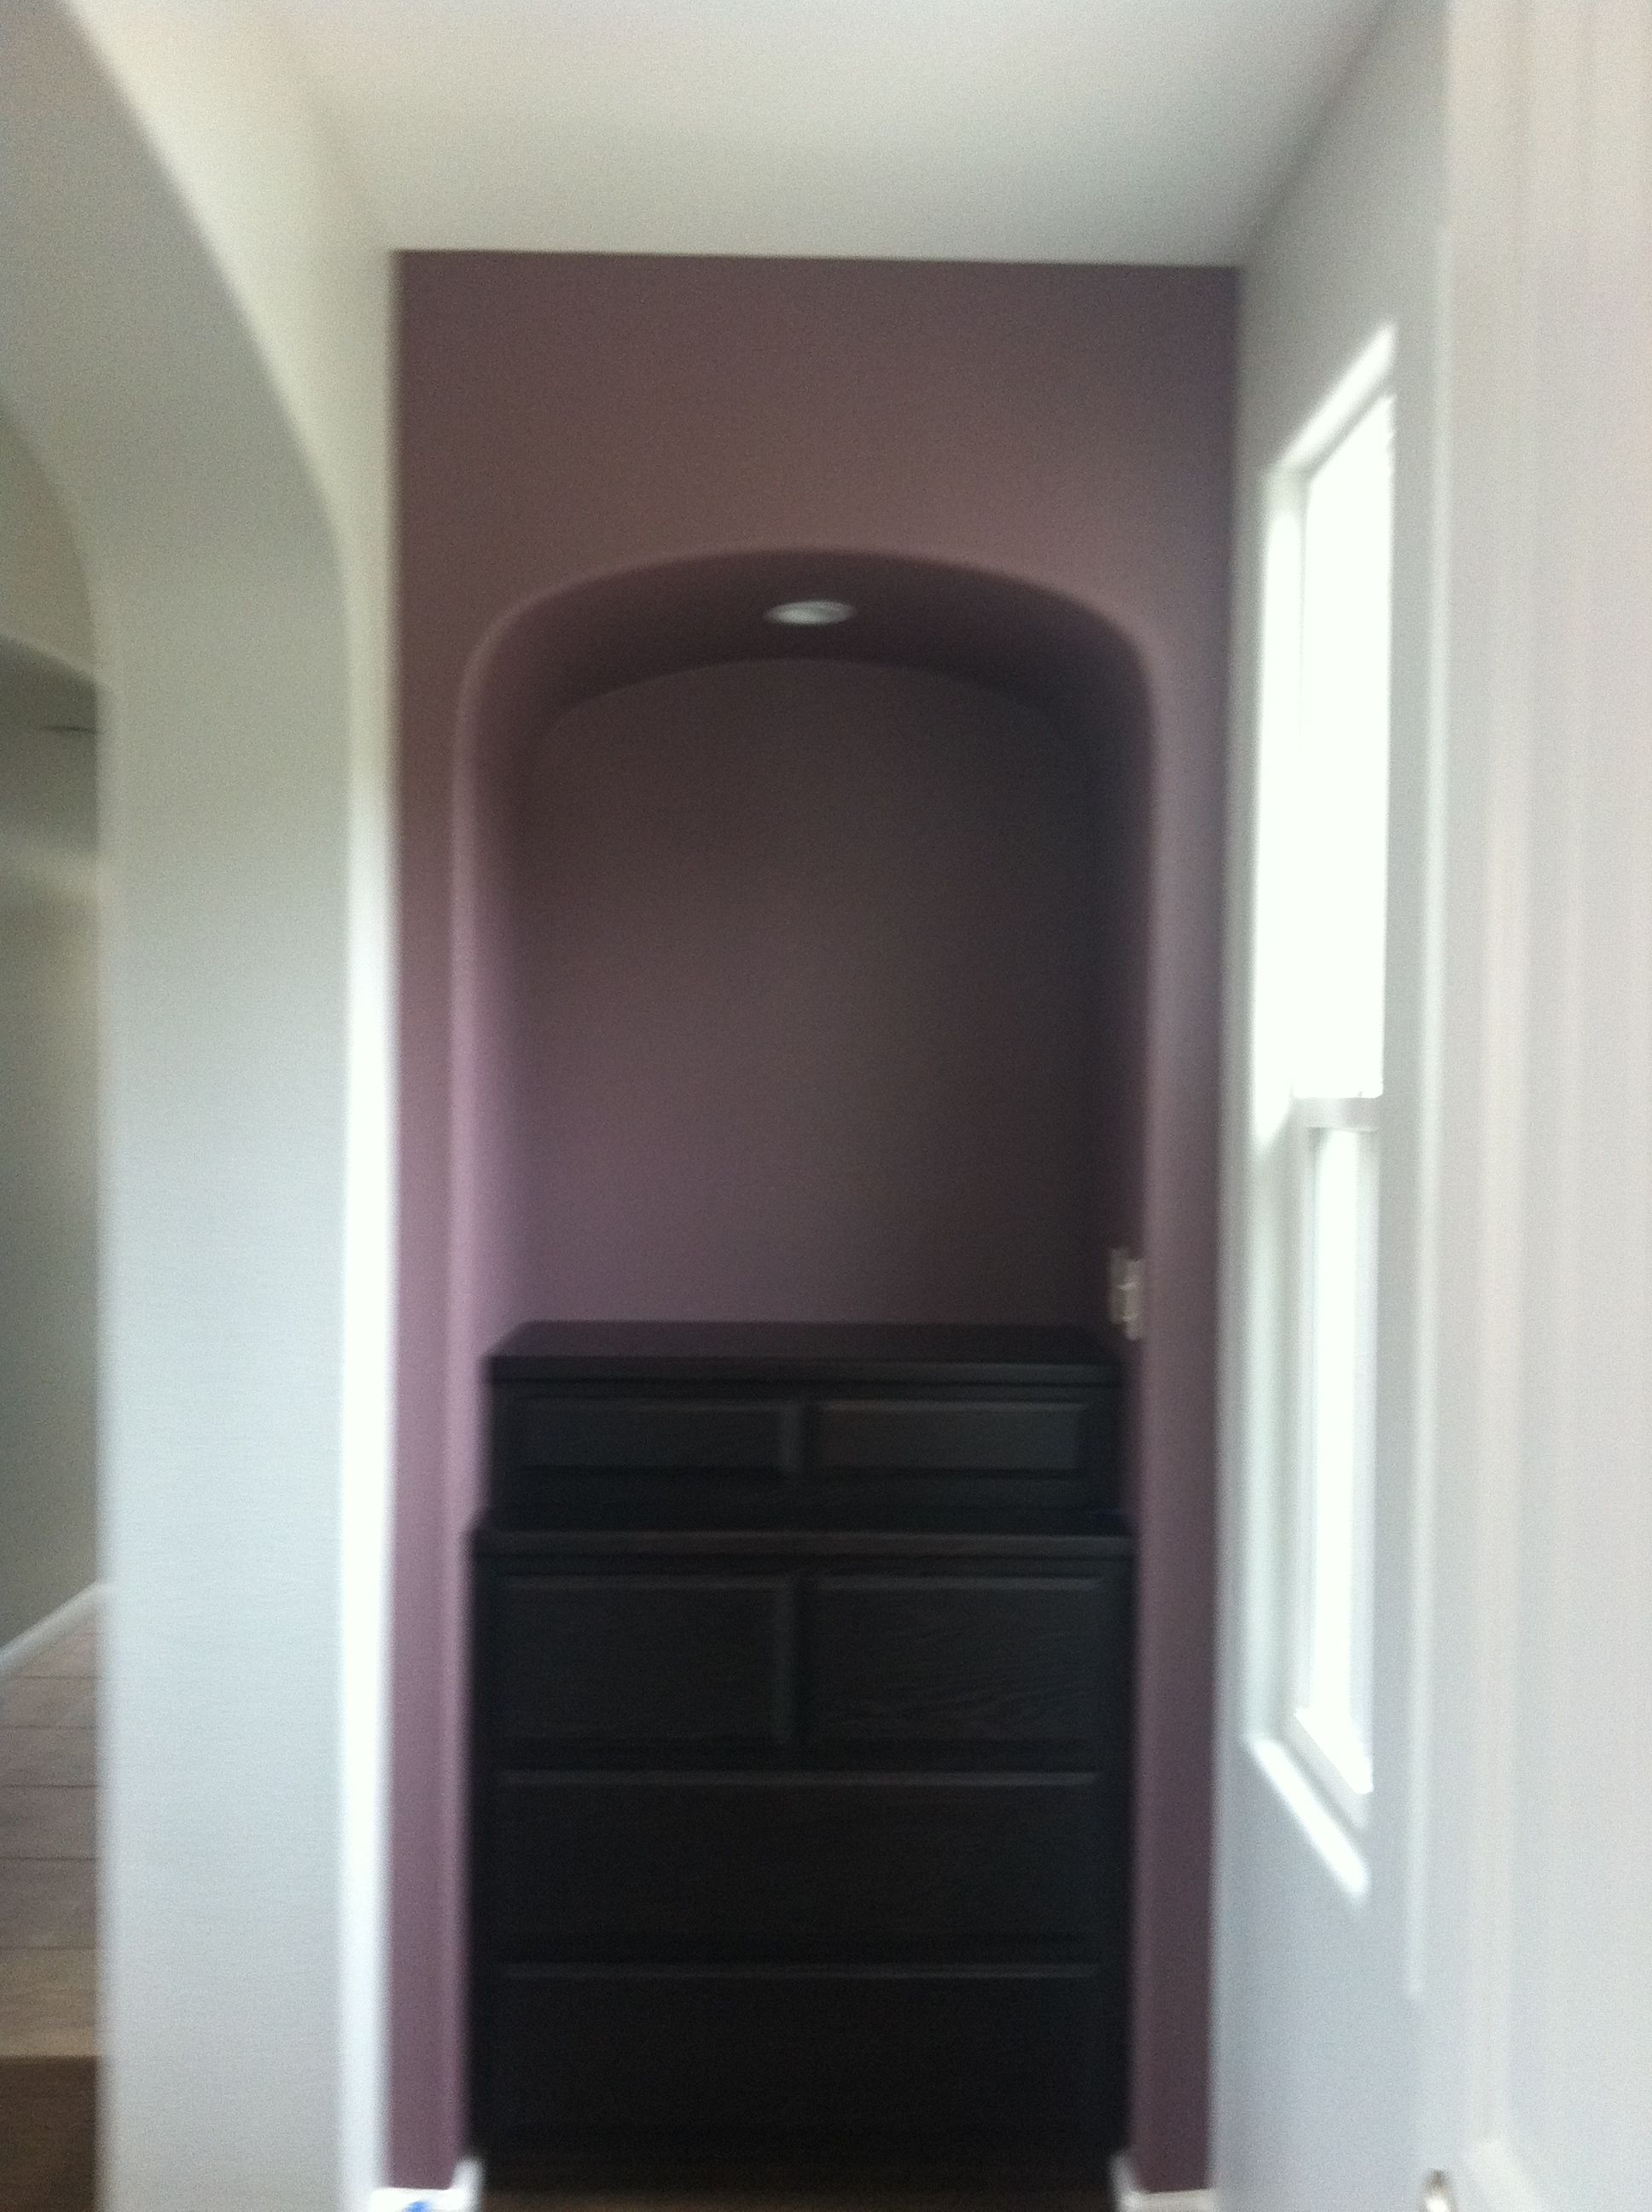 Wow 1 Day Painting San Jose Franchise Feature Wall In Hallway Paint Purple Orchid Feature Wall Wallpaper Feature Wall Painted Feature Wall